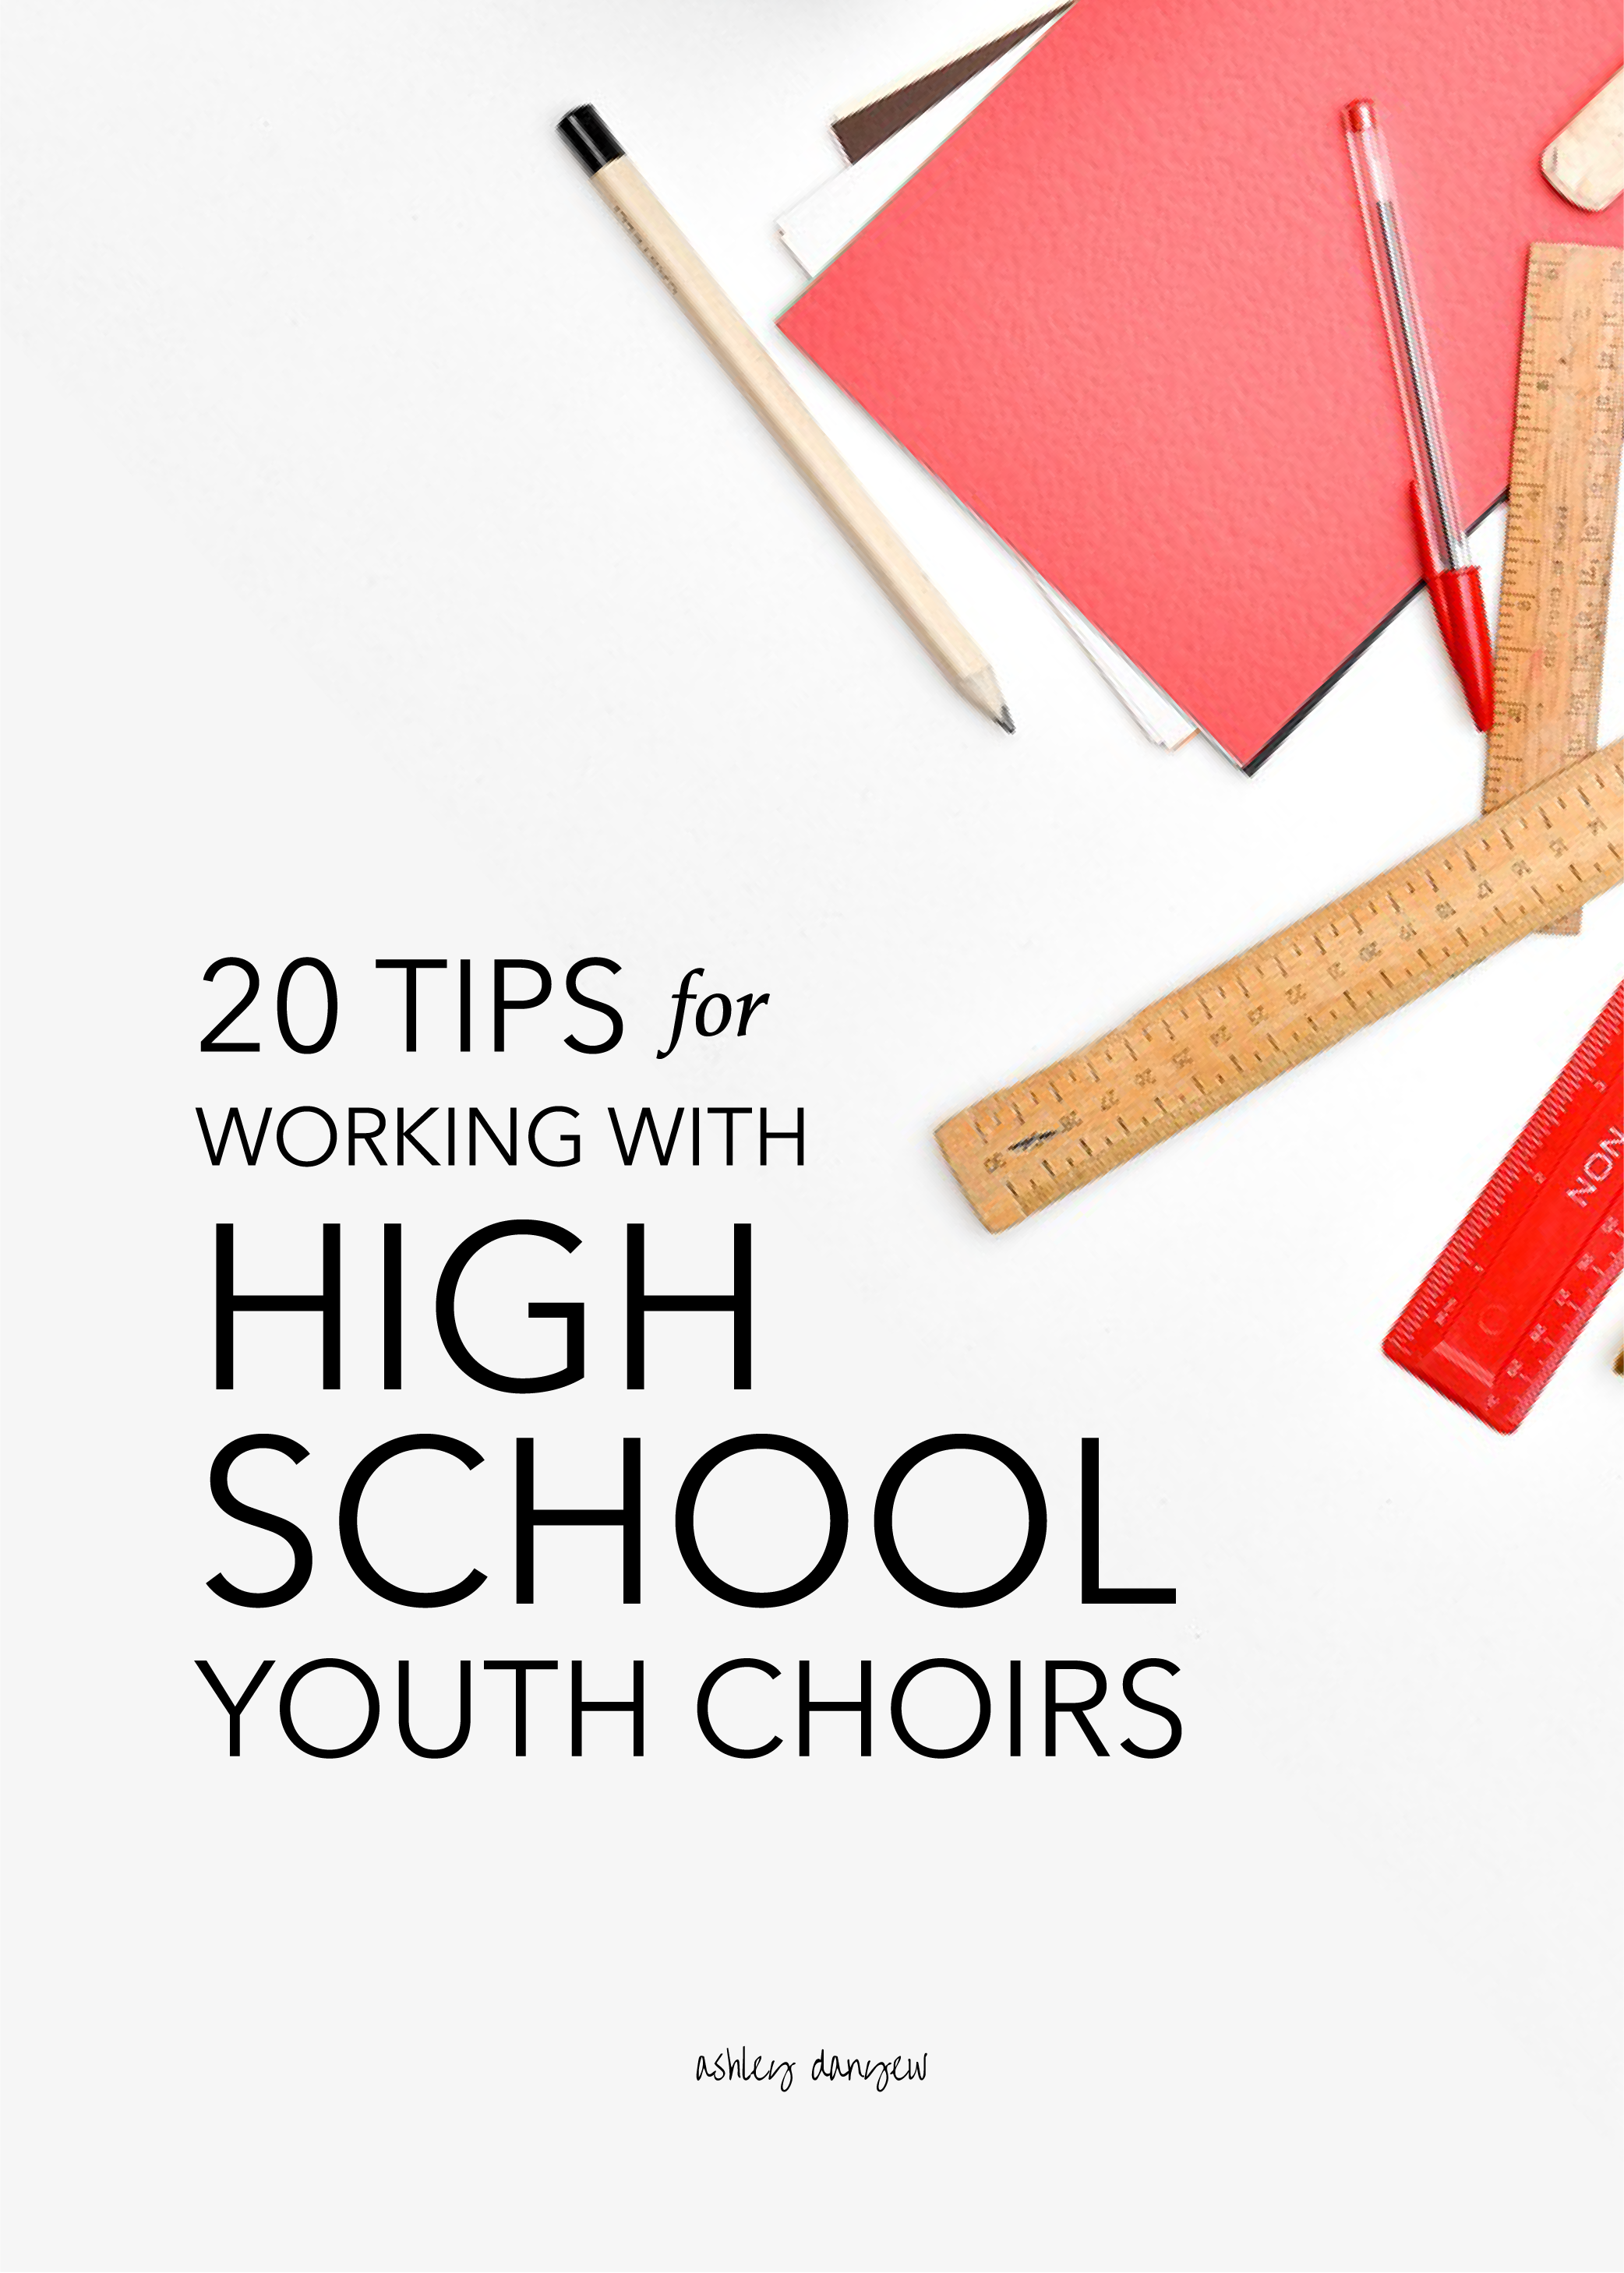 20 Tips for Working with High School Youth Choirs